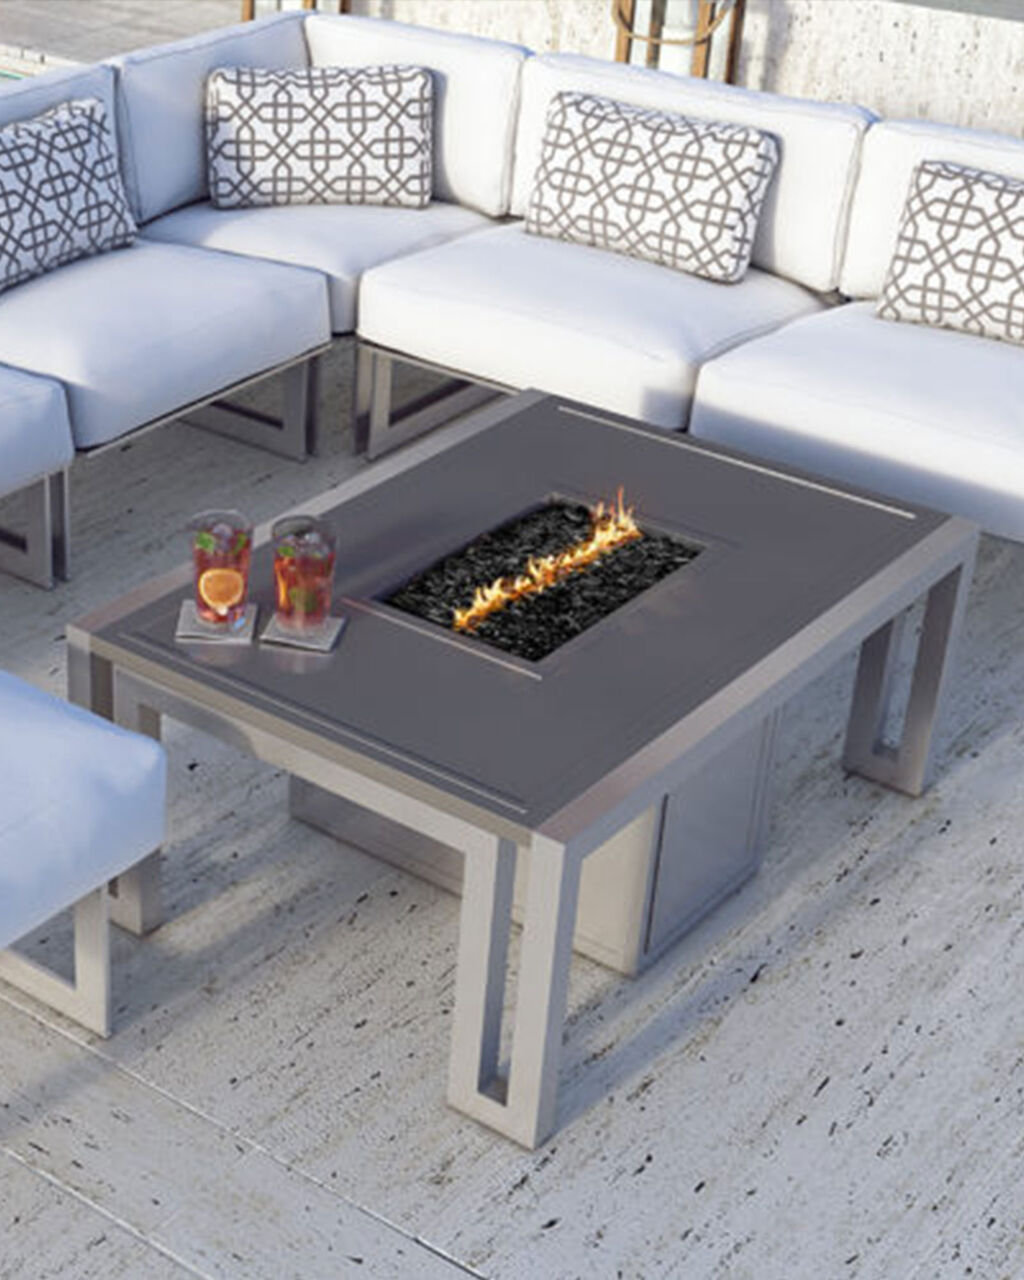 Rectangular gray fire pit with outdoor furniture